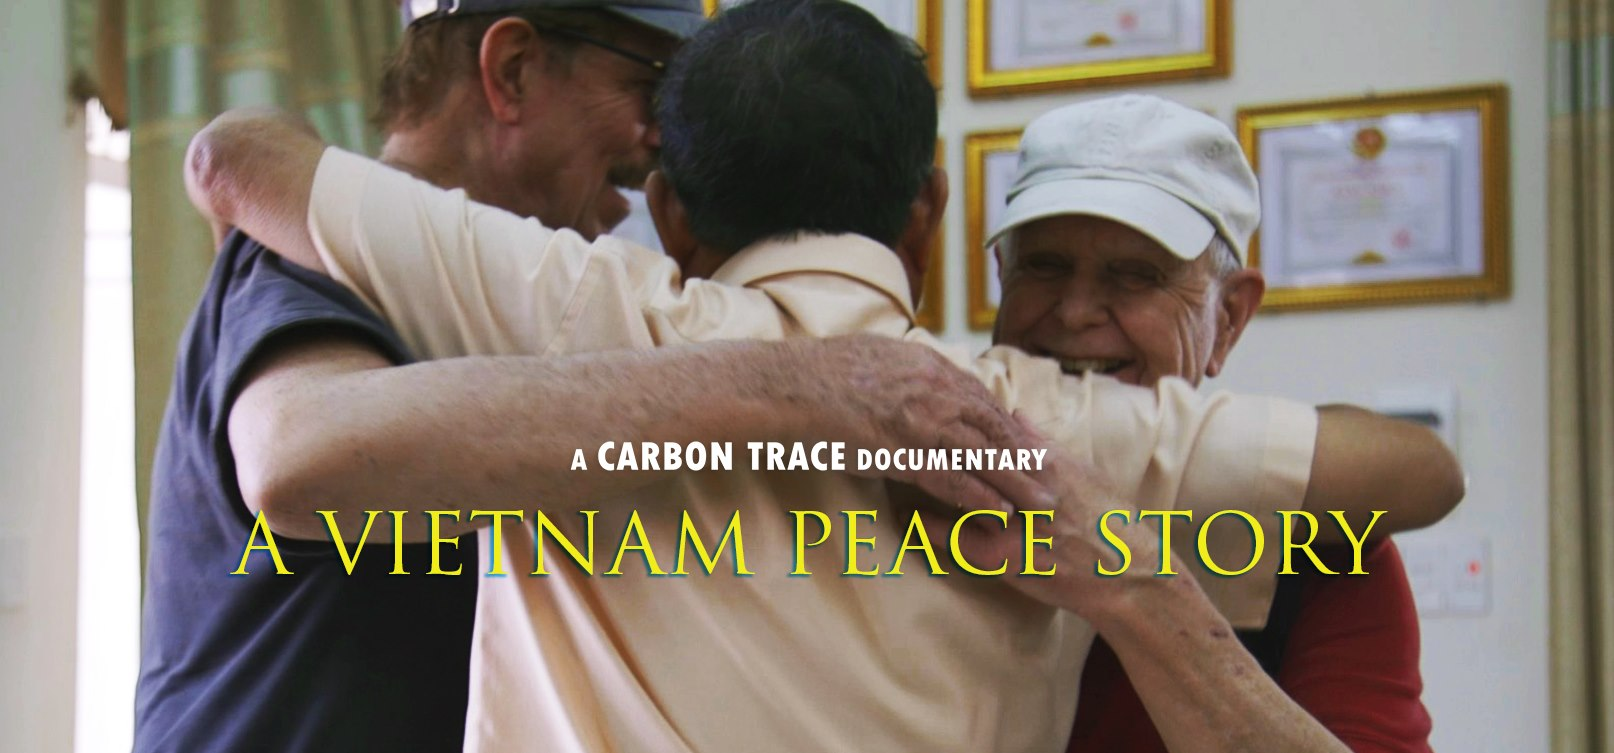 Behind the Scenes: A Vietnam Peace Story